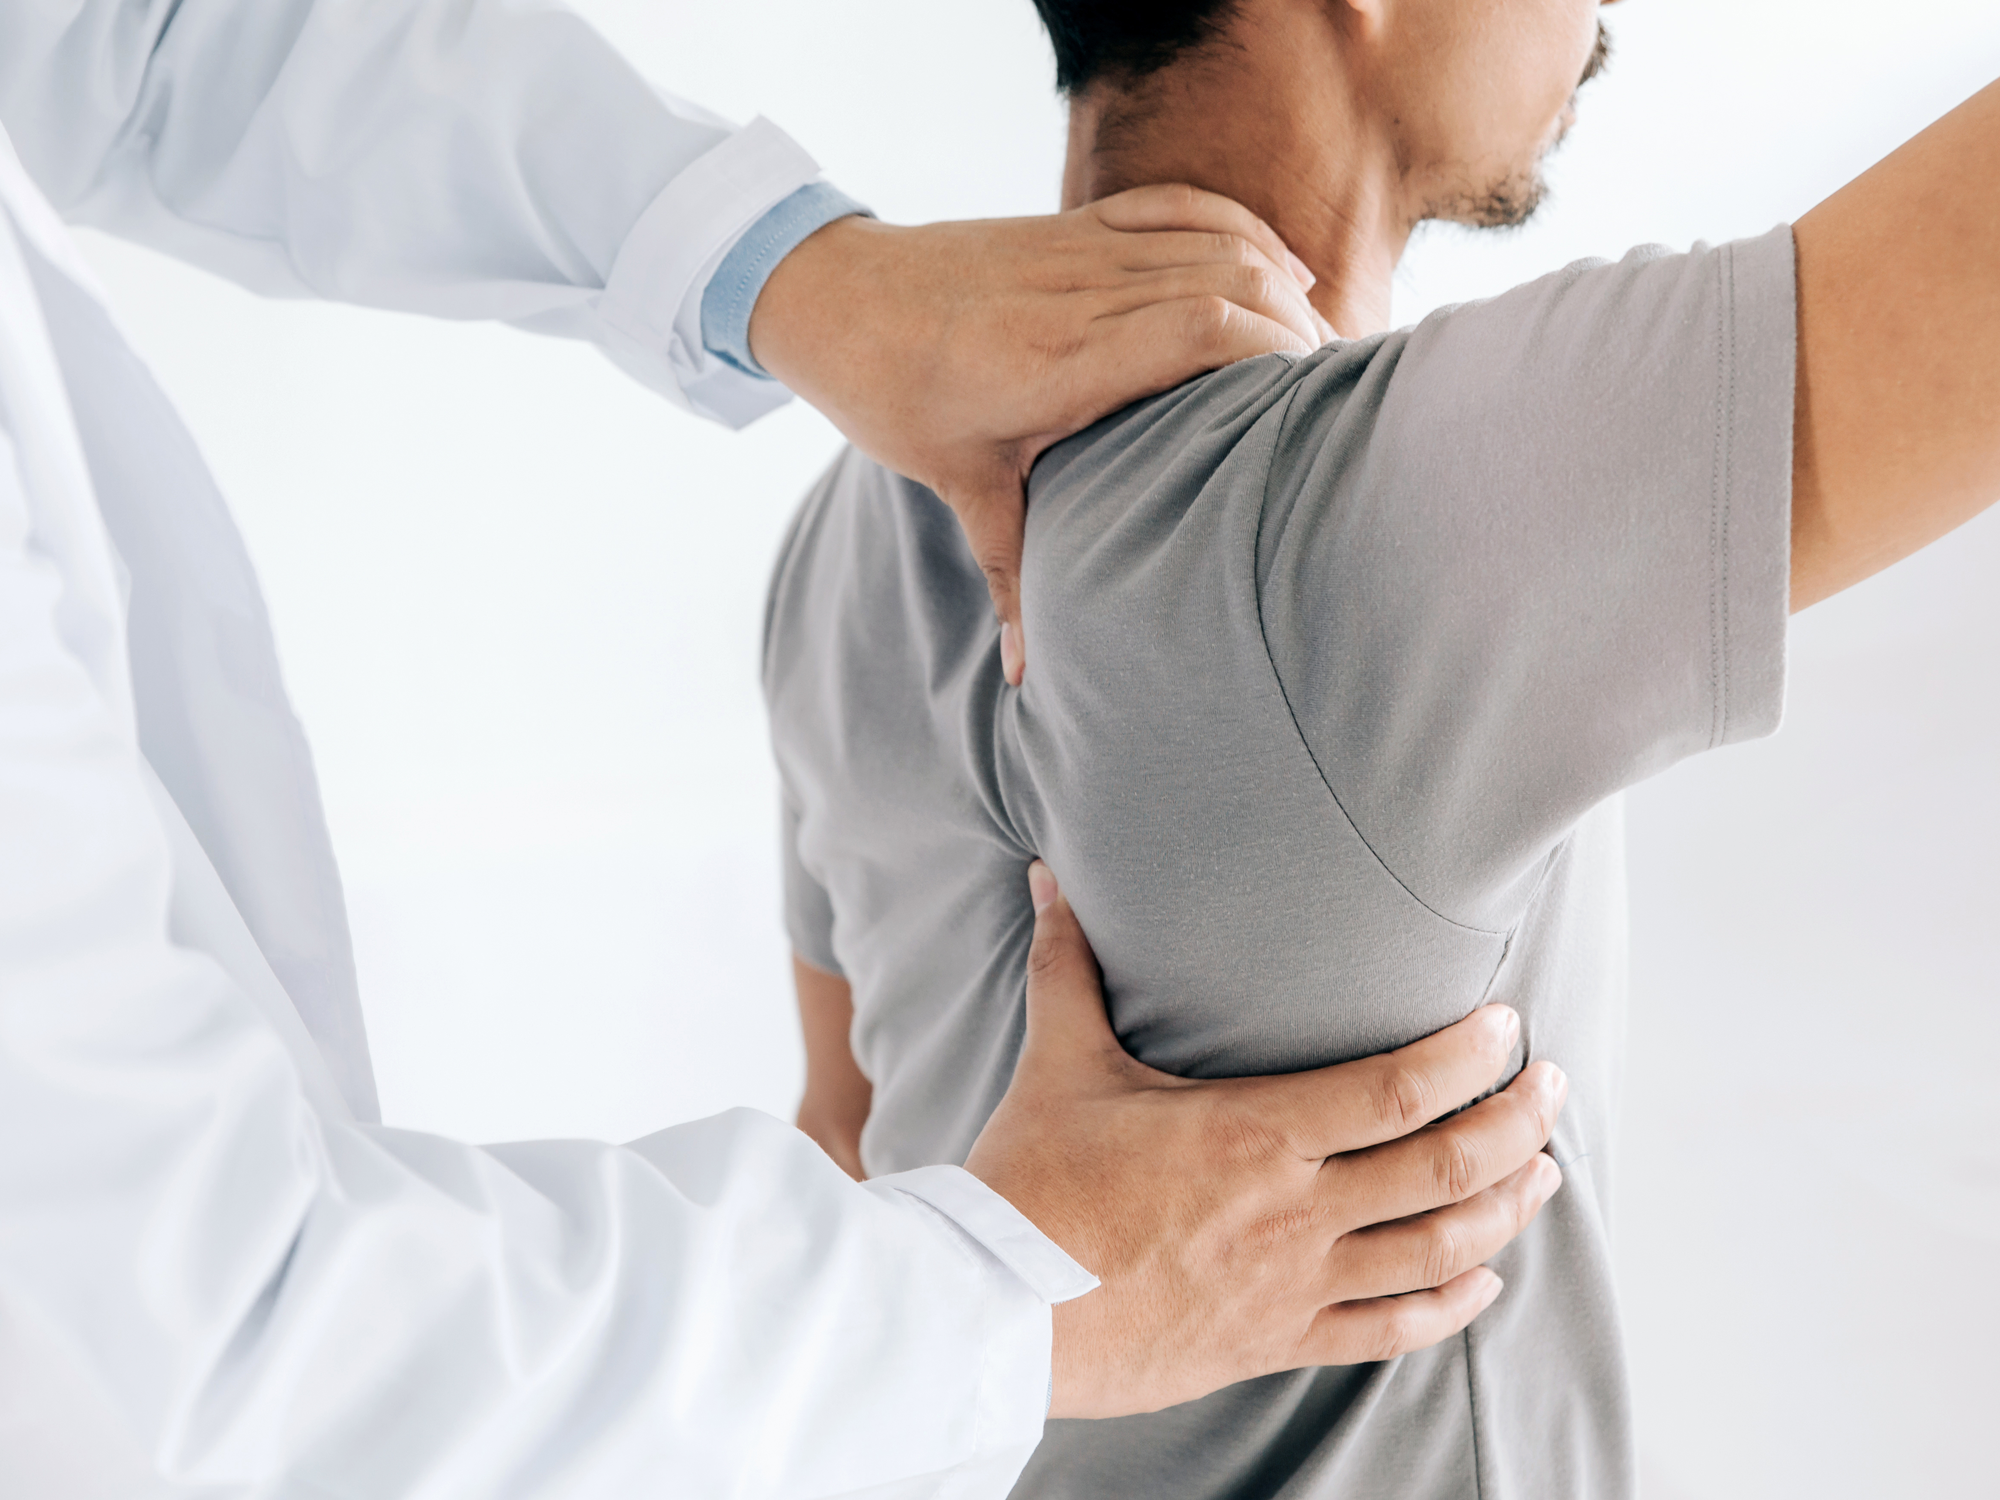 How Can a Chiropractor Help After a Sports Injury?